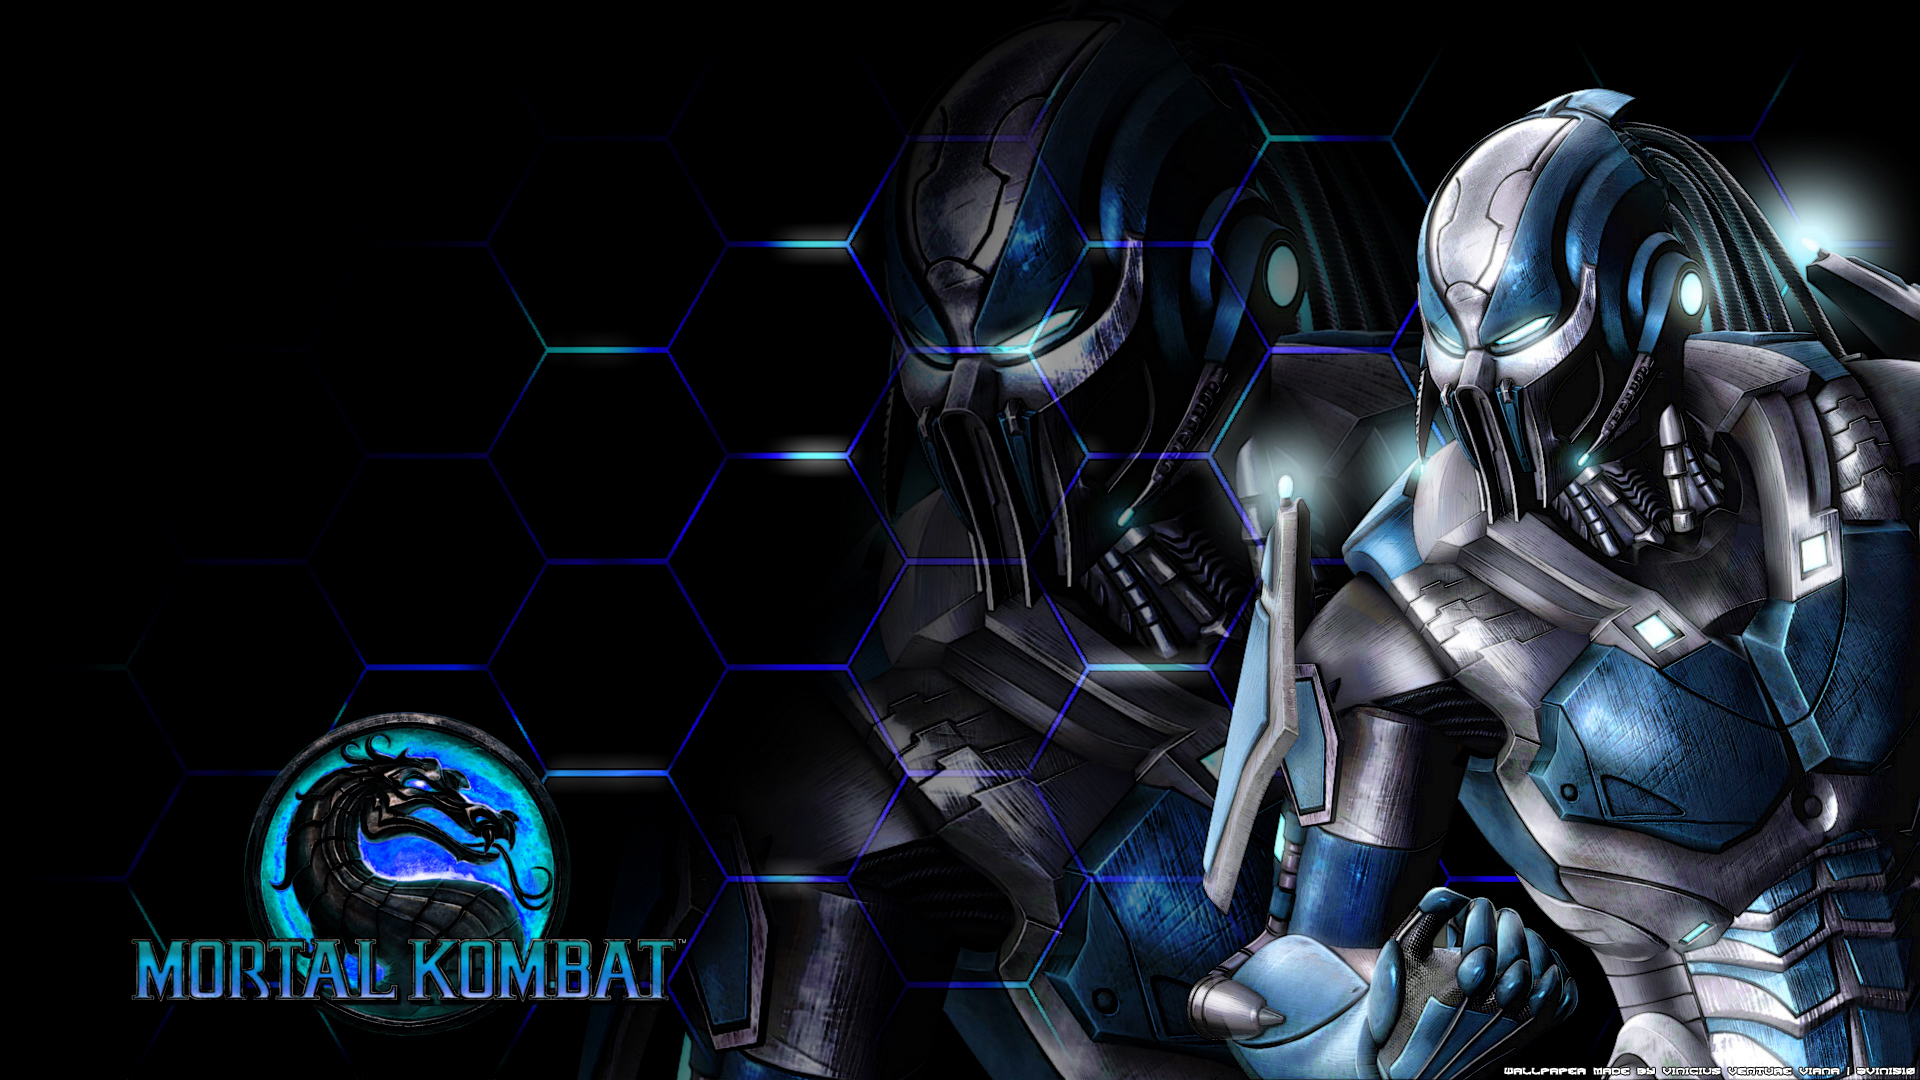 74+] Sub Zero Wallpaper on WallpaperSafari